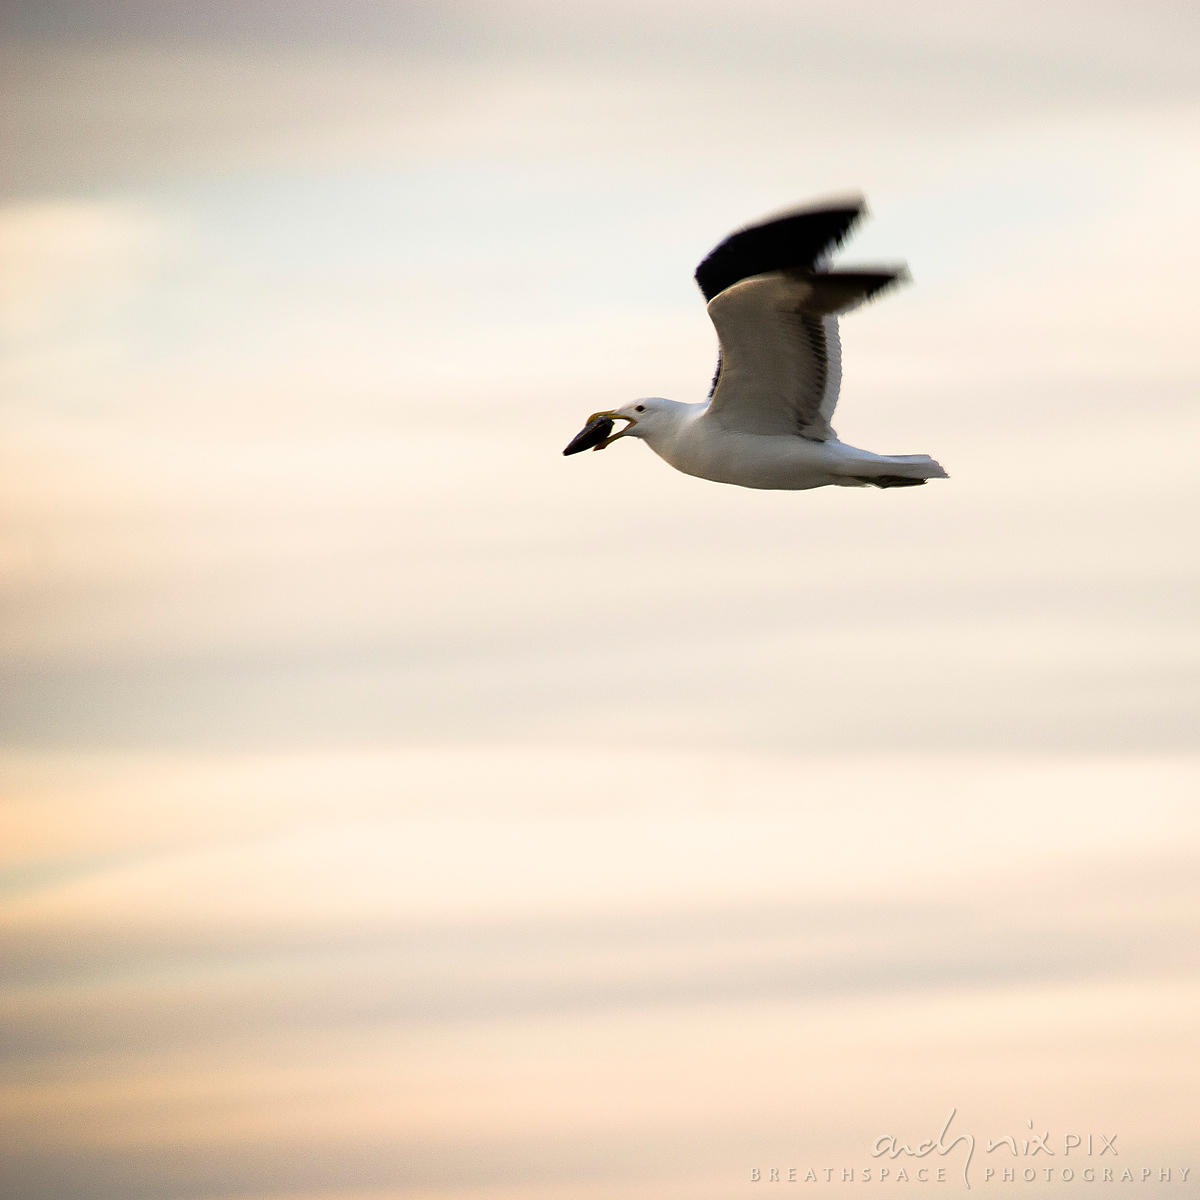 Motion blur - one seagull flying along beach at sunrise, clouds behind